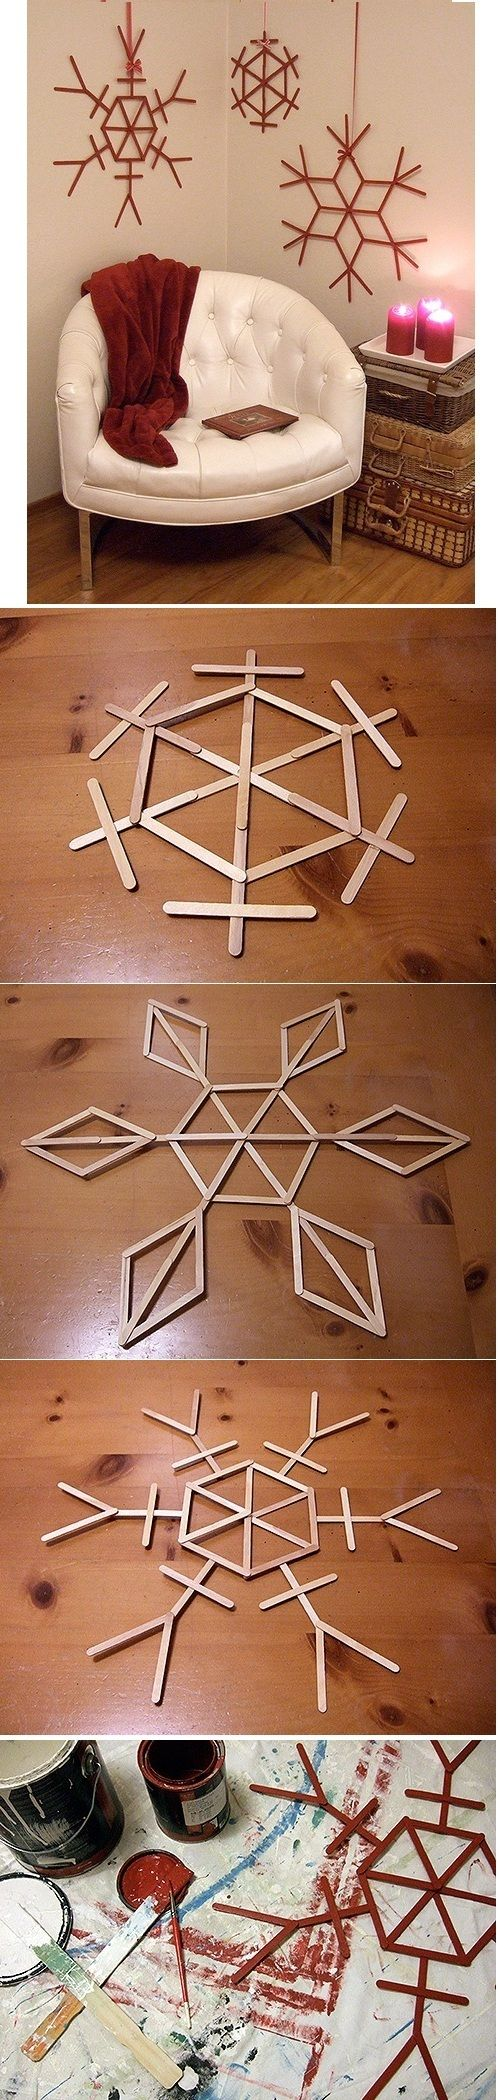 giant snowflakesChristmas Crafts, Popsicles Snowflakes, Christmas Decoration, Sticks Snowflakes, Giants Snowflakes, Diy, Popsicle Sticks, Popsicles Sticks, Crafts Sticks